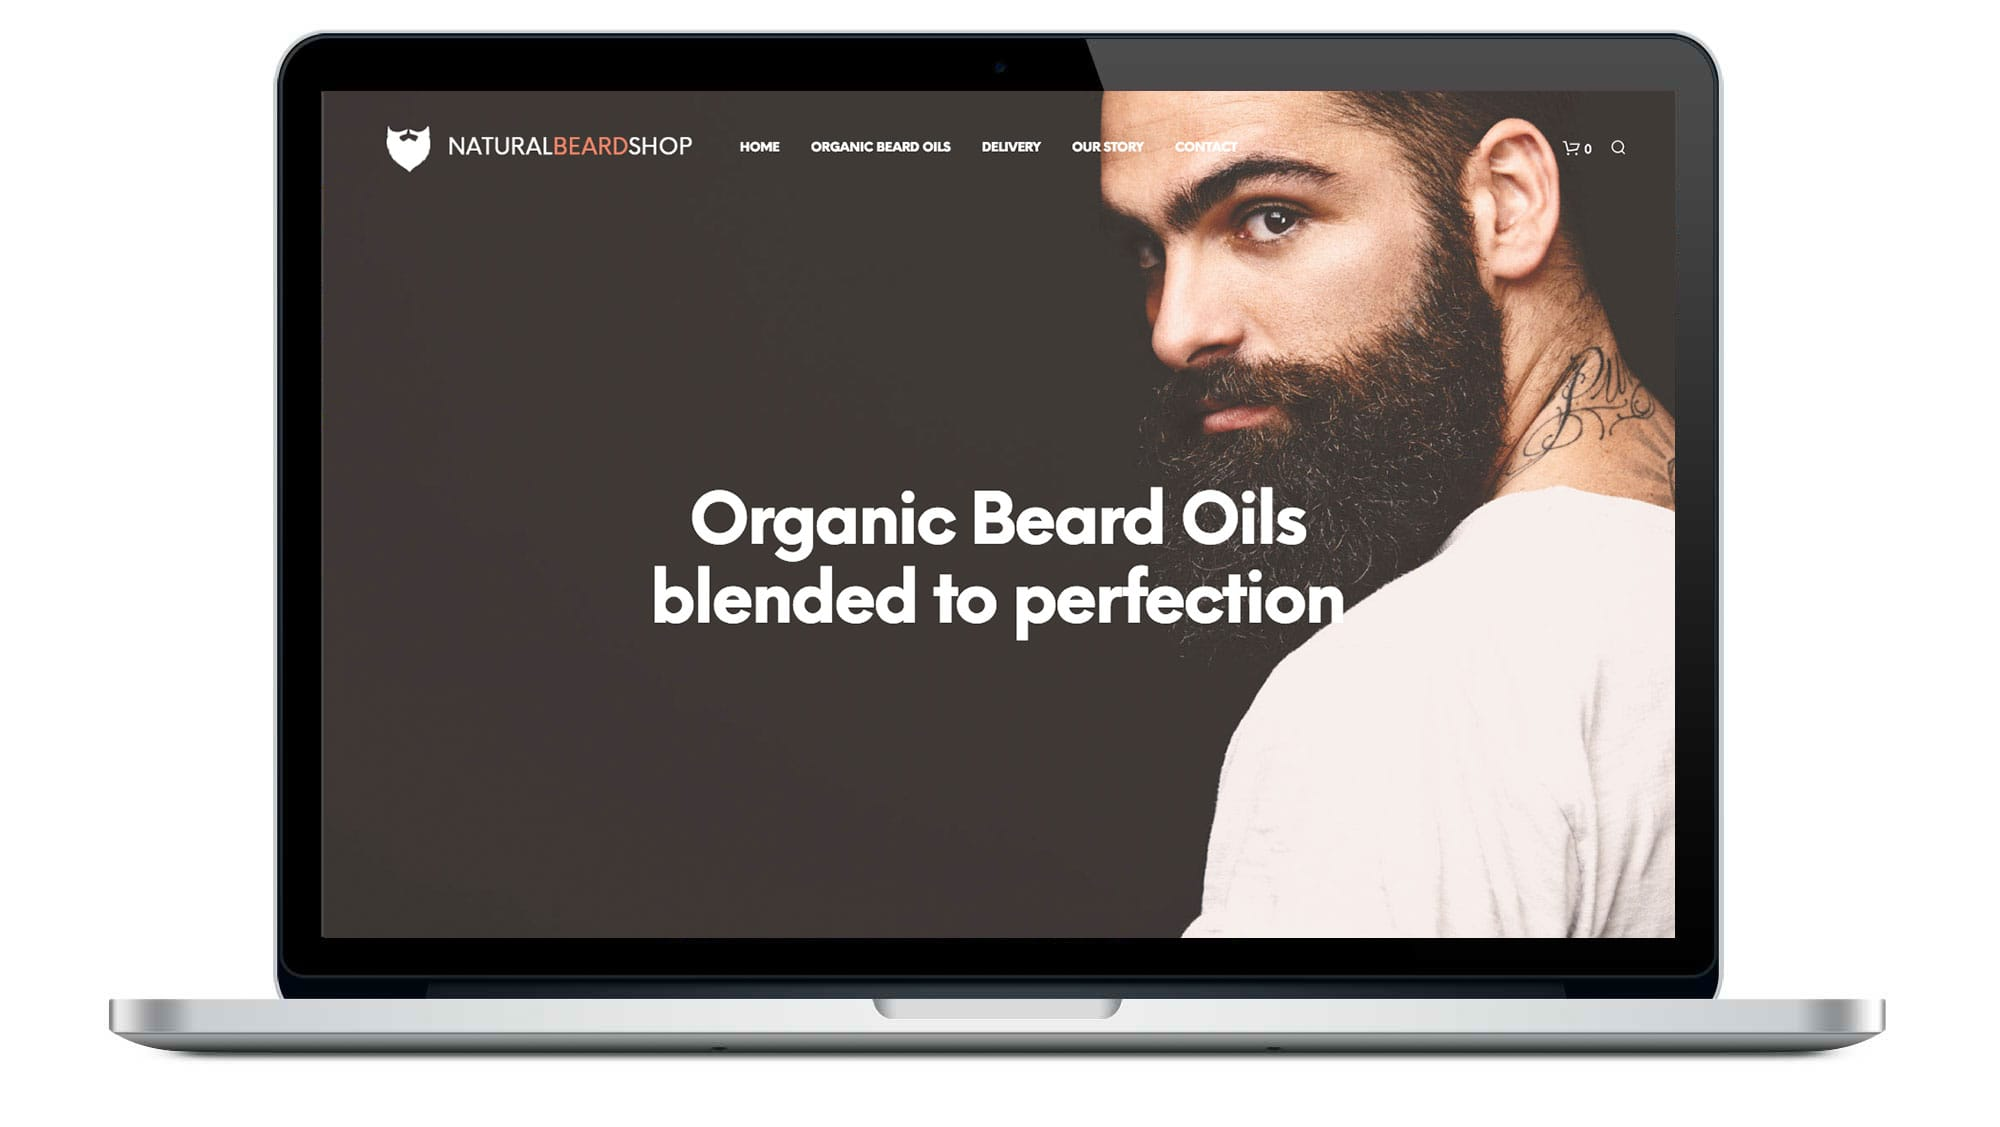 Natural Beard Shop Homepage